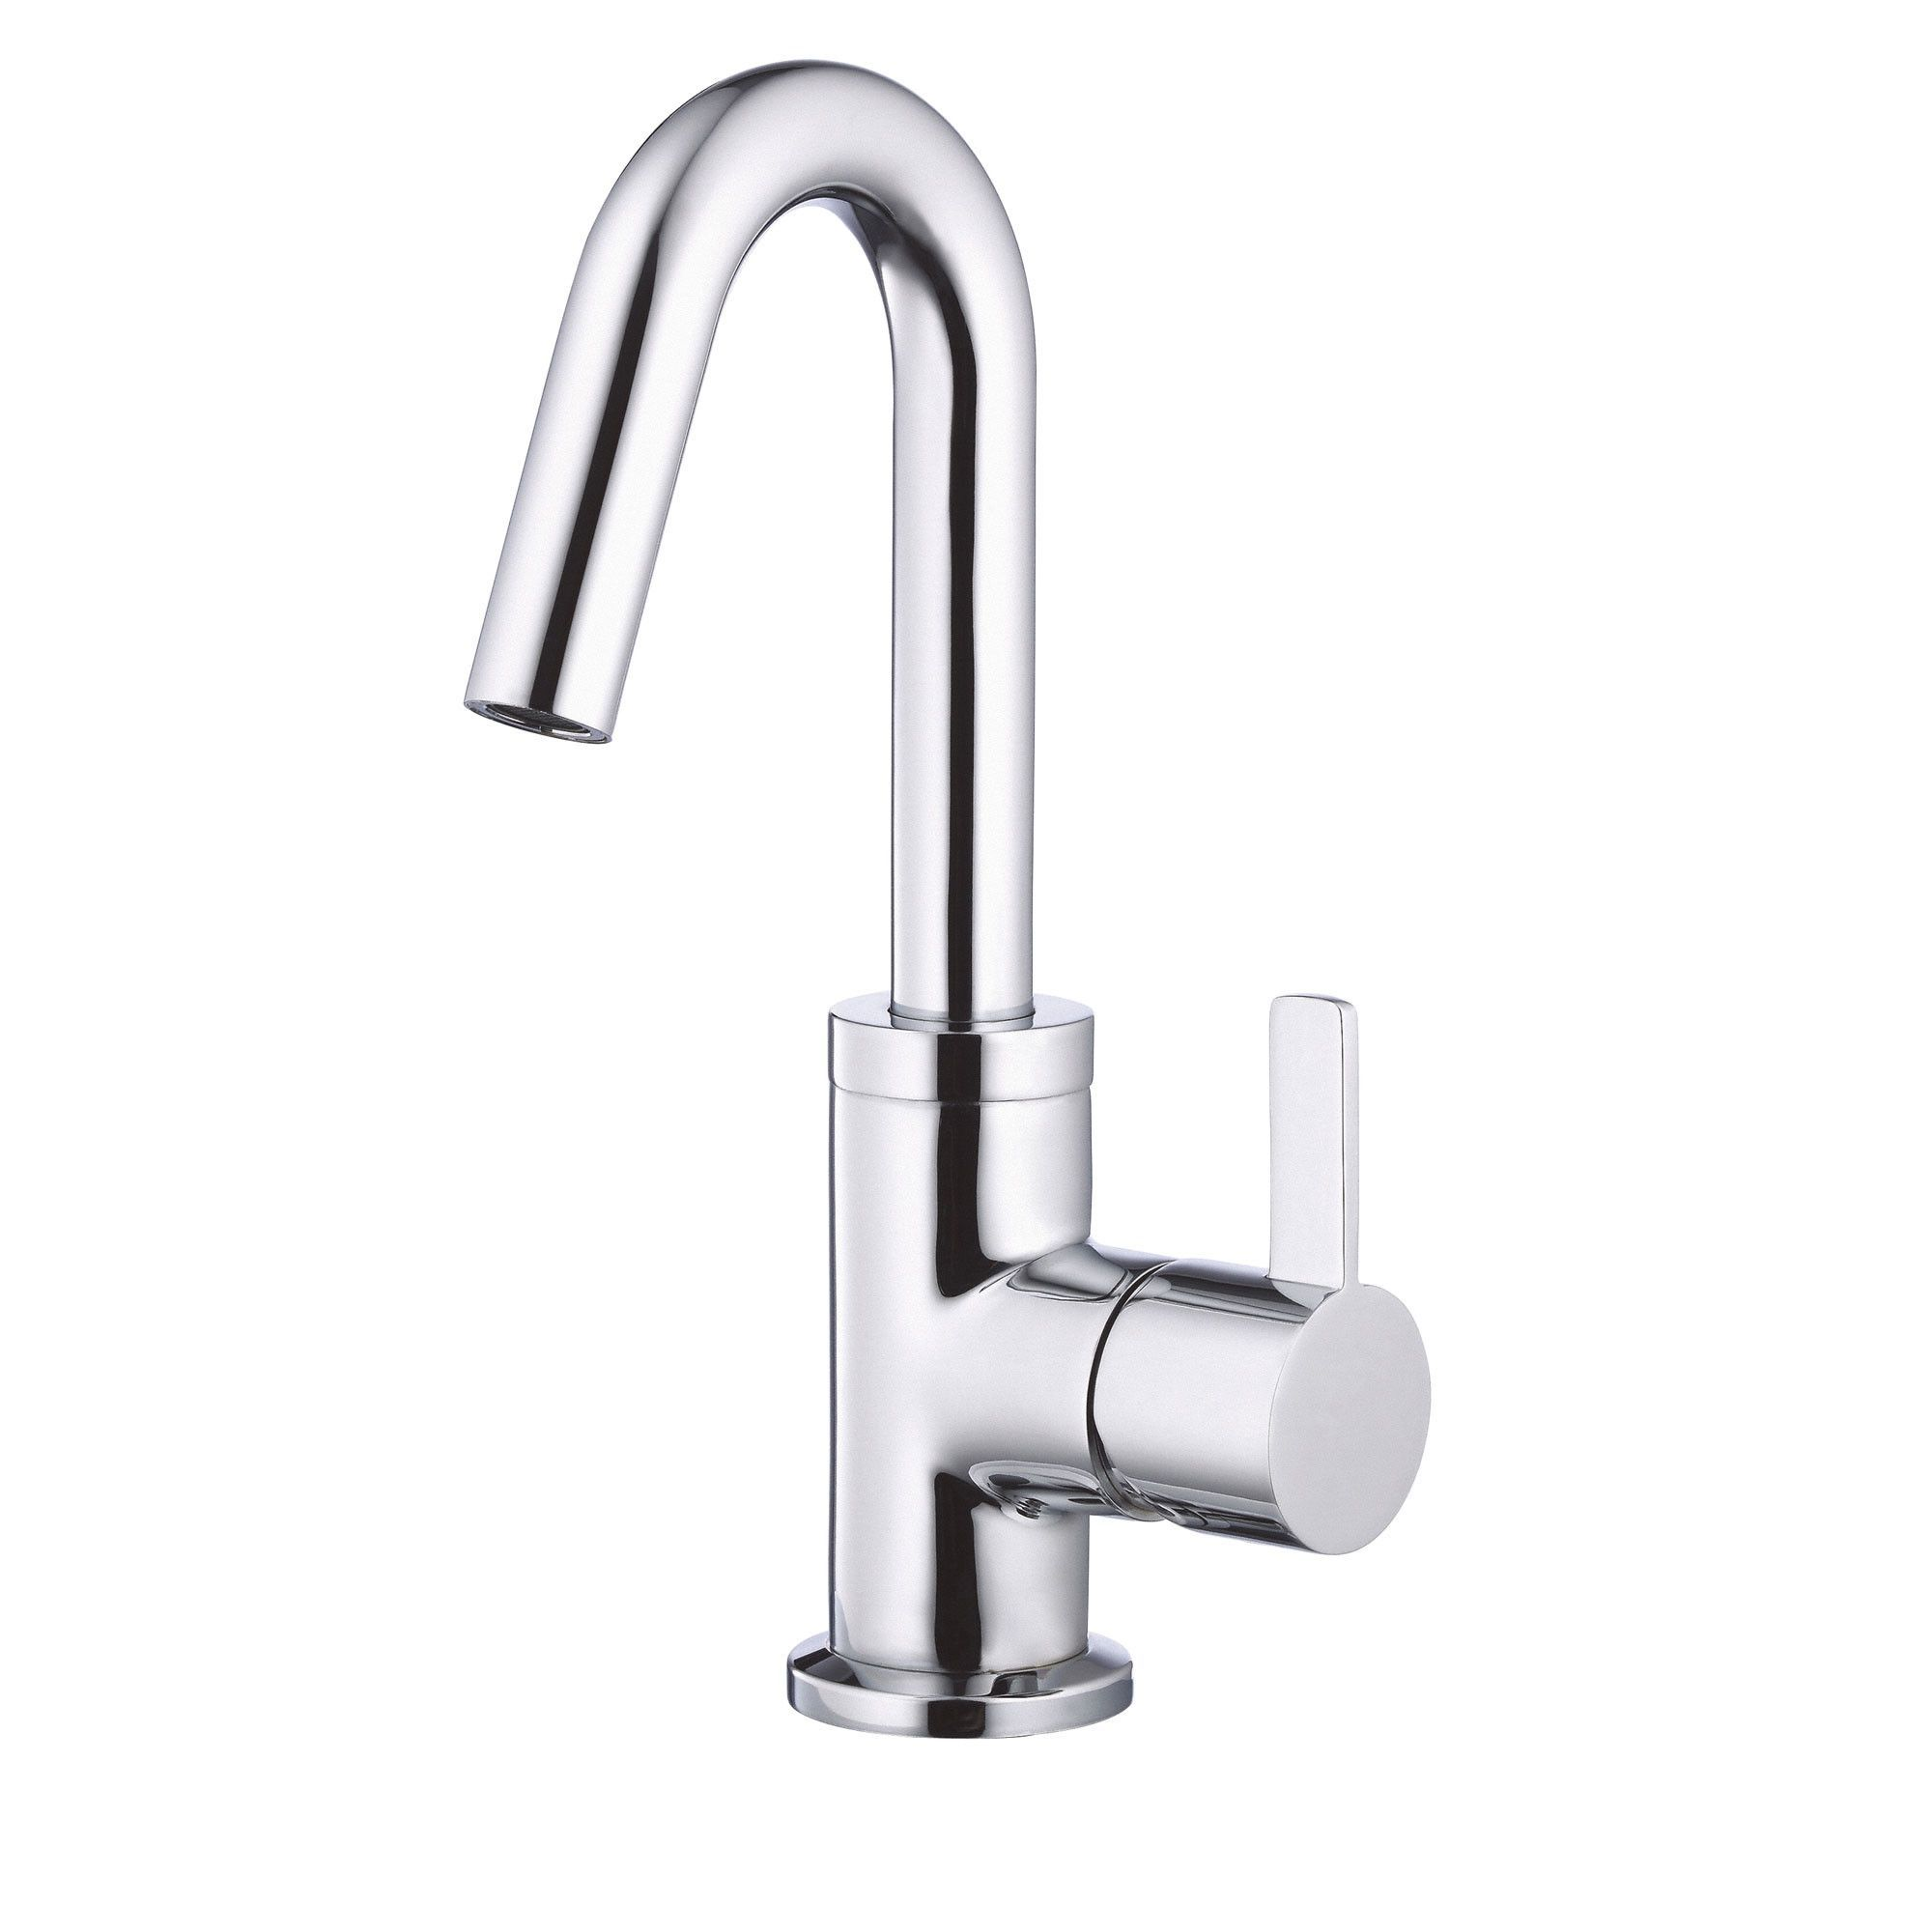 Danze Amalfi Chrome Single Handle Centerset Bathroom Faucet w ...